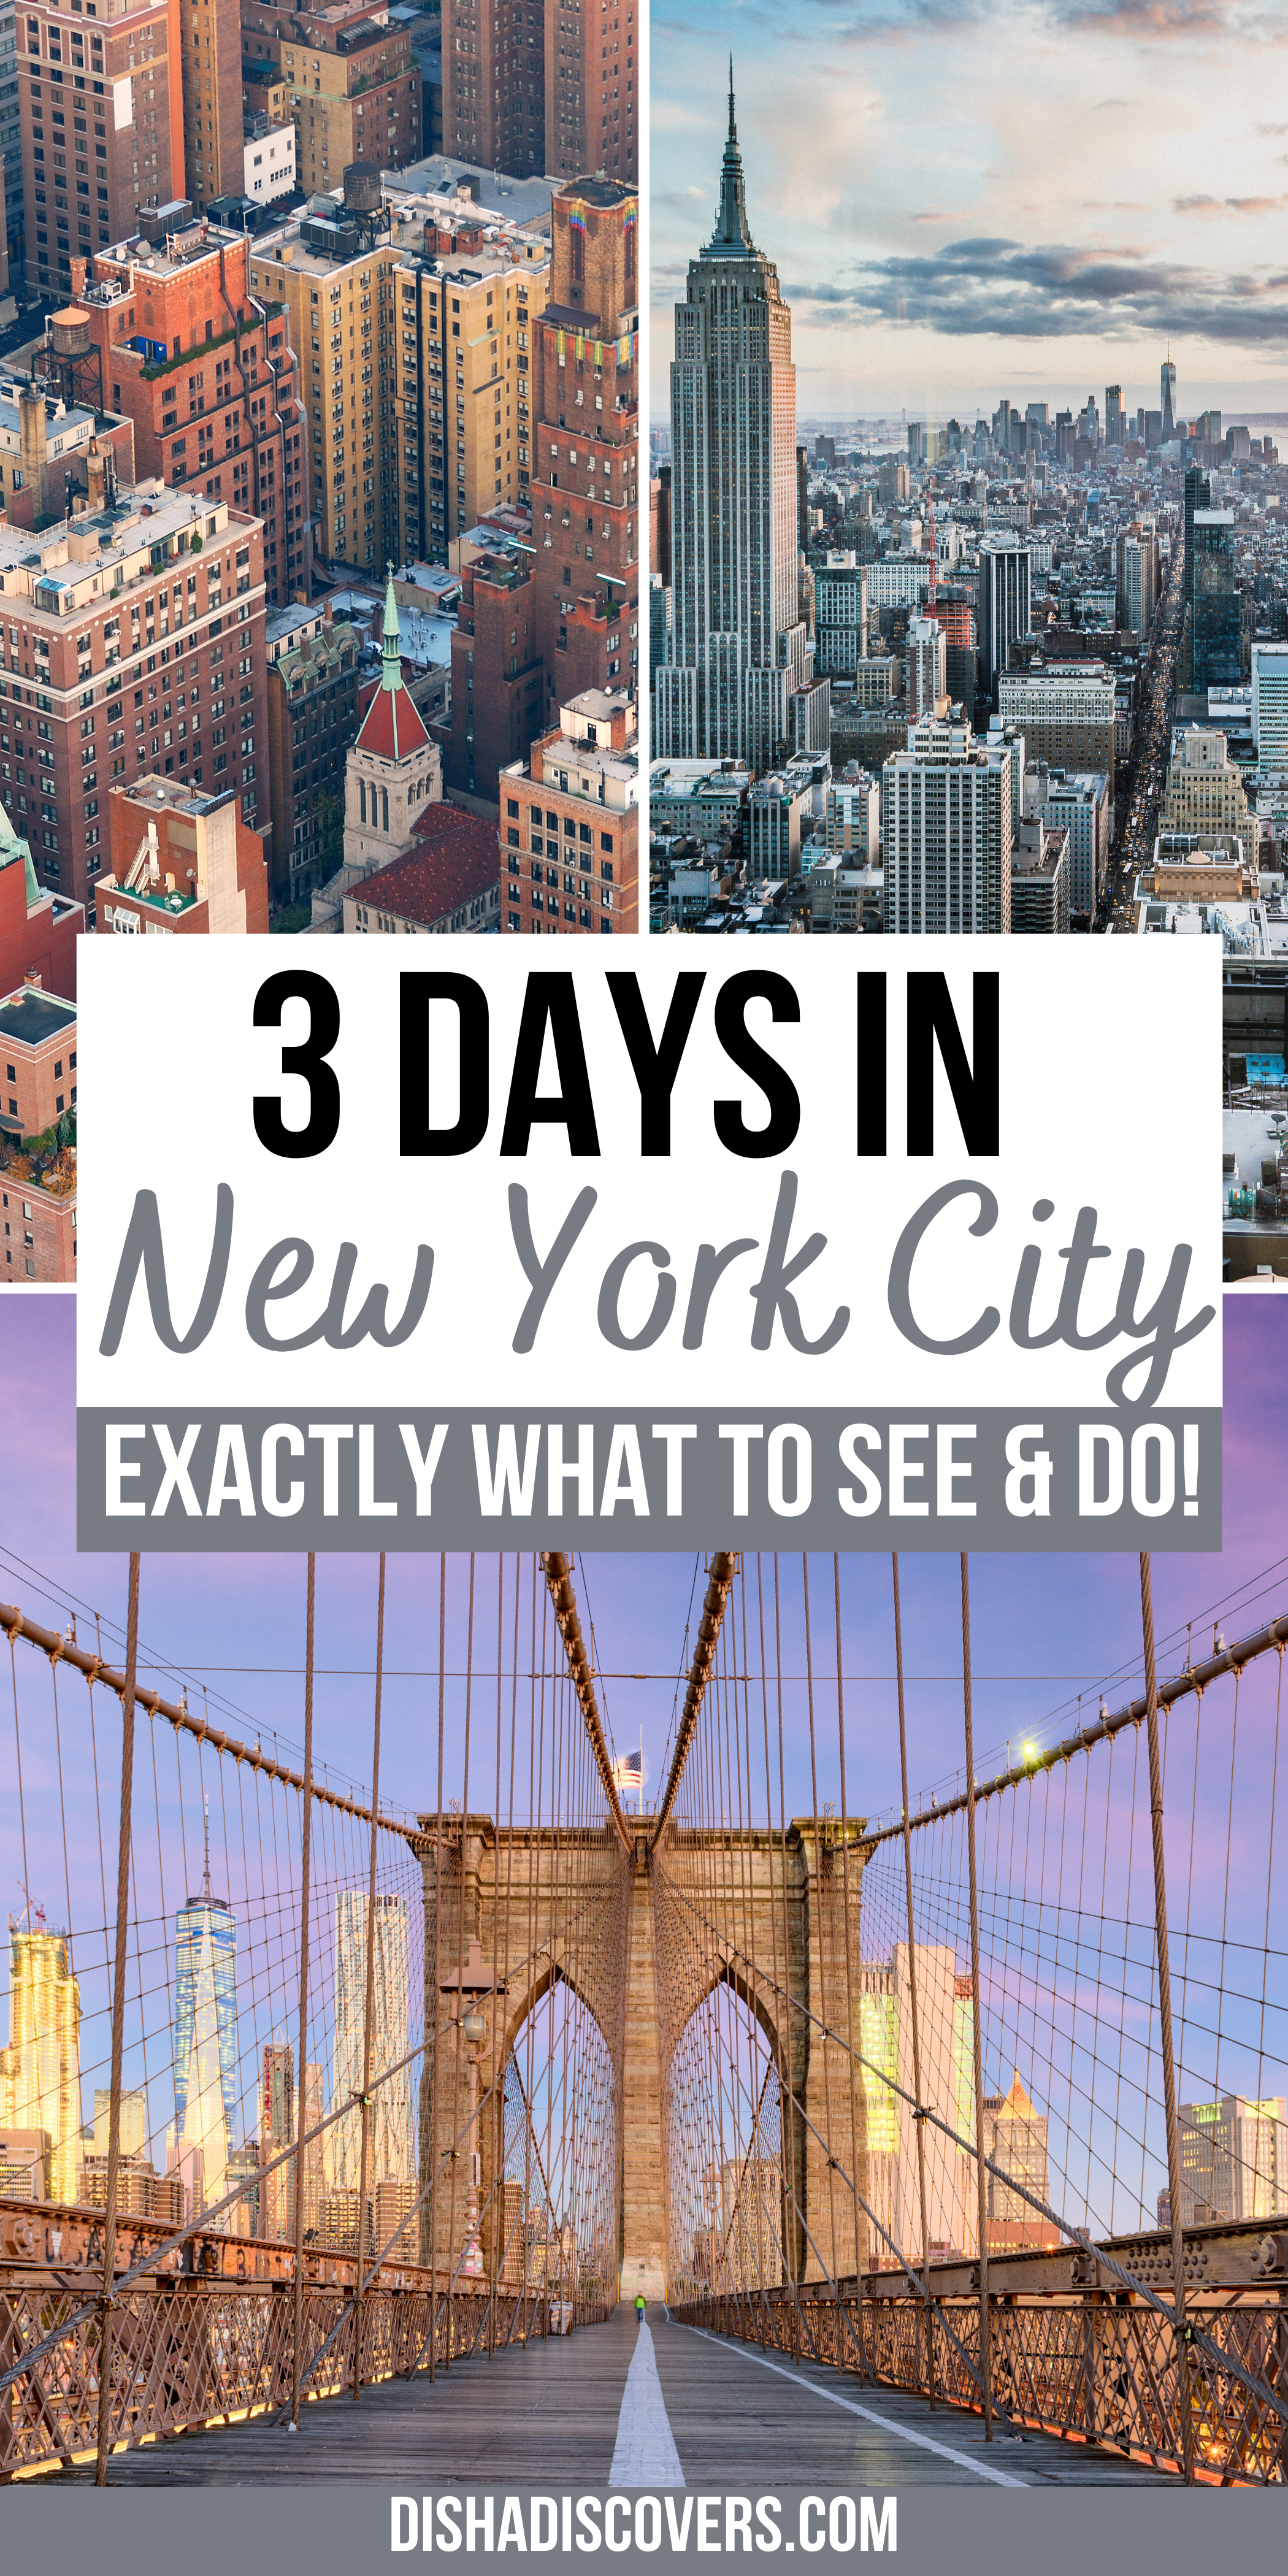 What To See And Do In New York City The Perfect Three Day Itinerary New York City Travel New York Travel New York Travel Guide